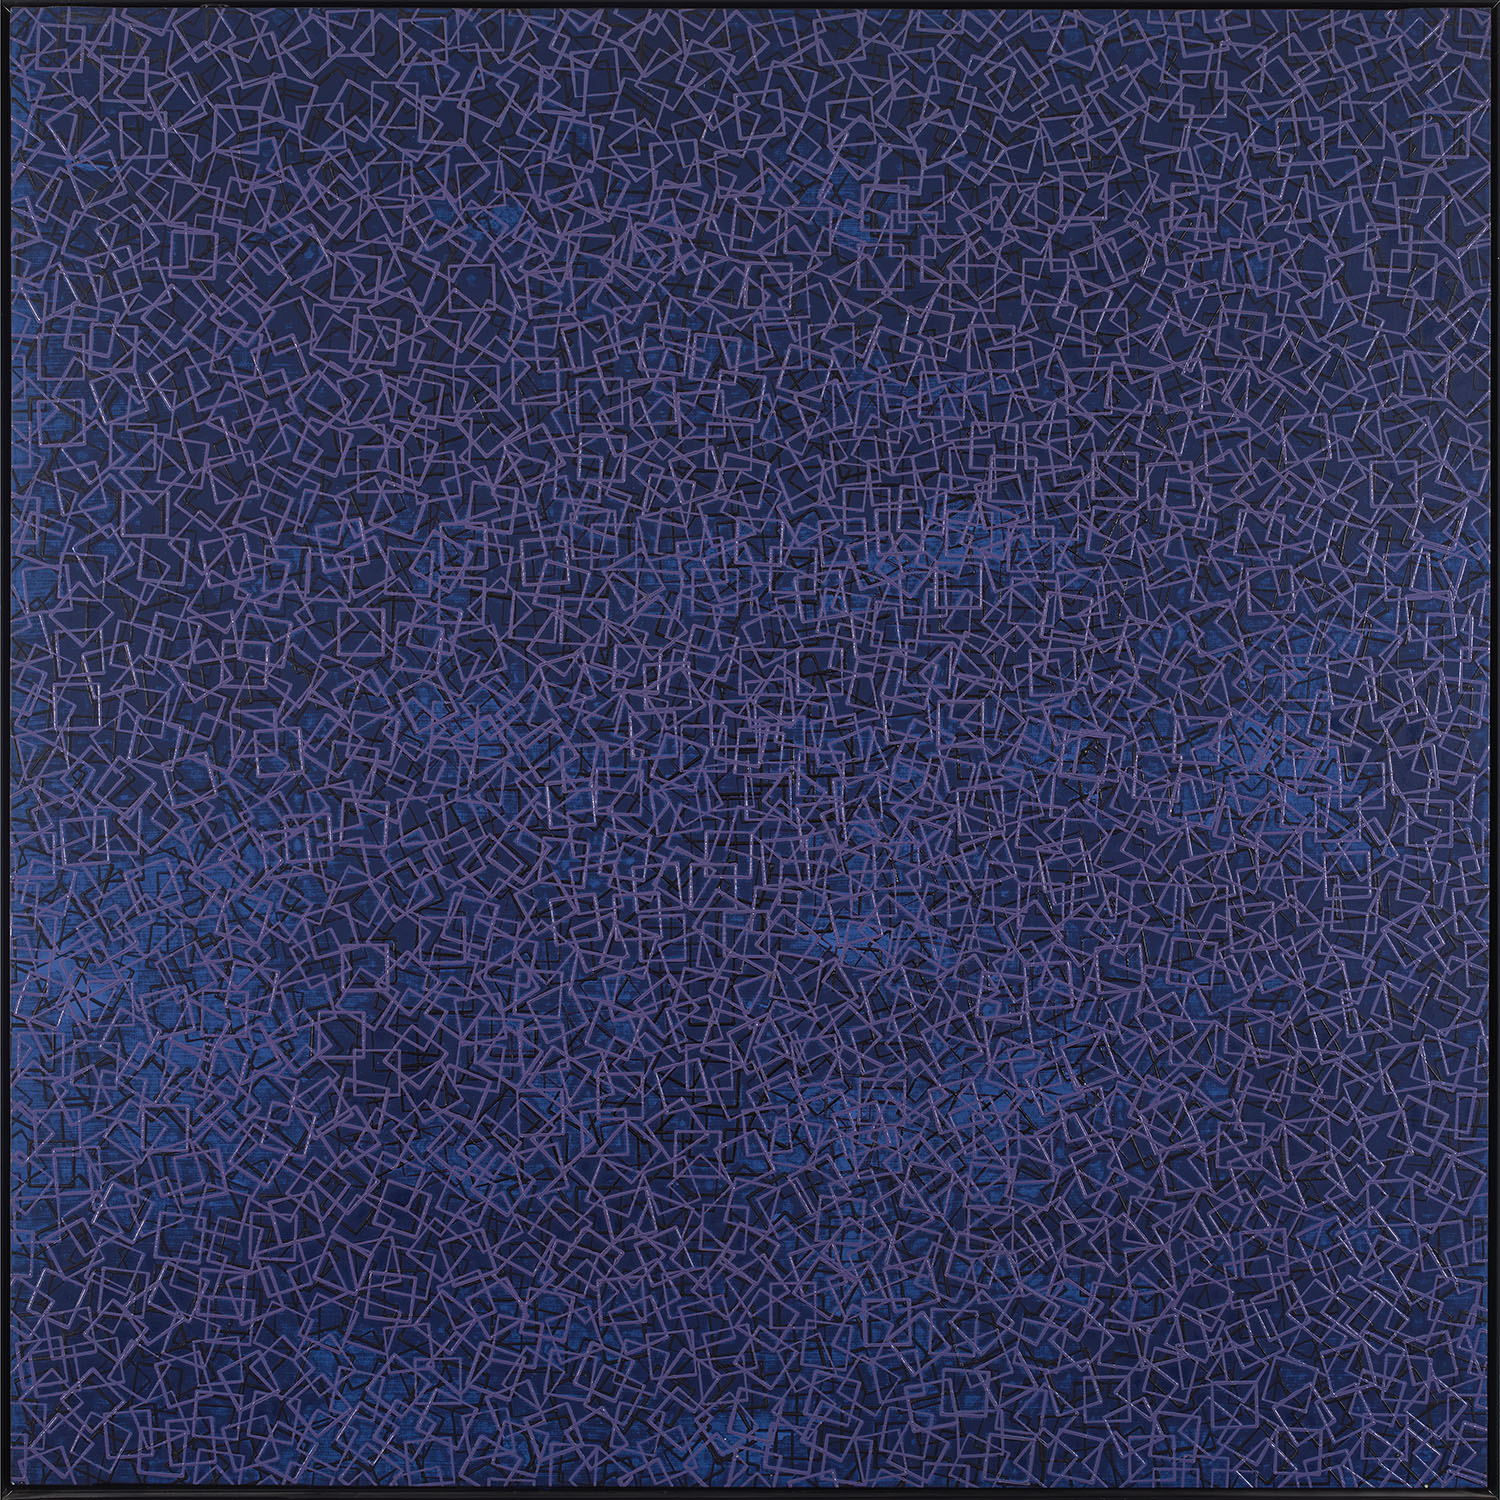 Kinetic composition, 1974, oil on canvas, cm 125 x 125